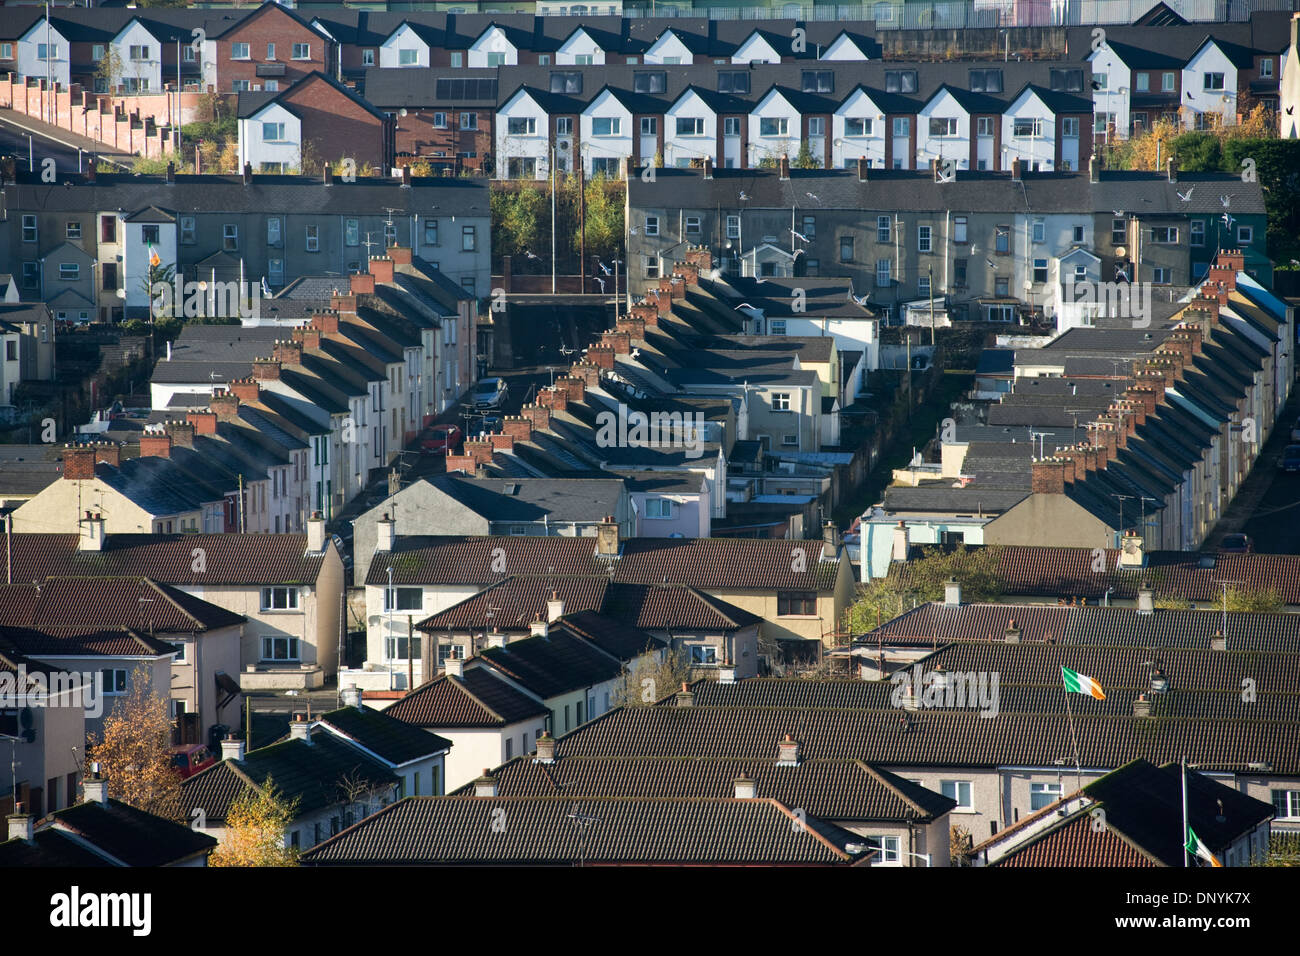 Terraced houses in the Bogside, Derry, Londonderry, Northern Ireland. - Stock Image